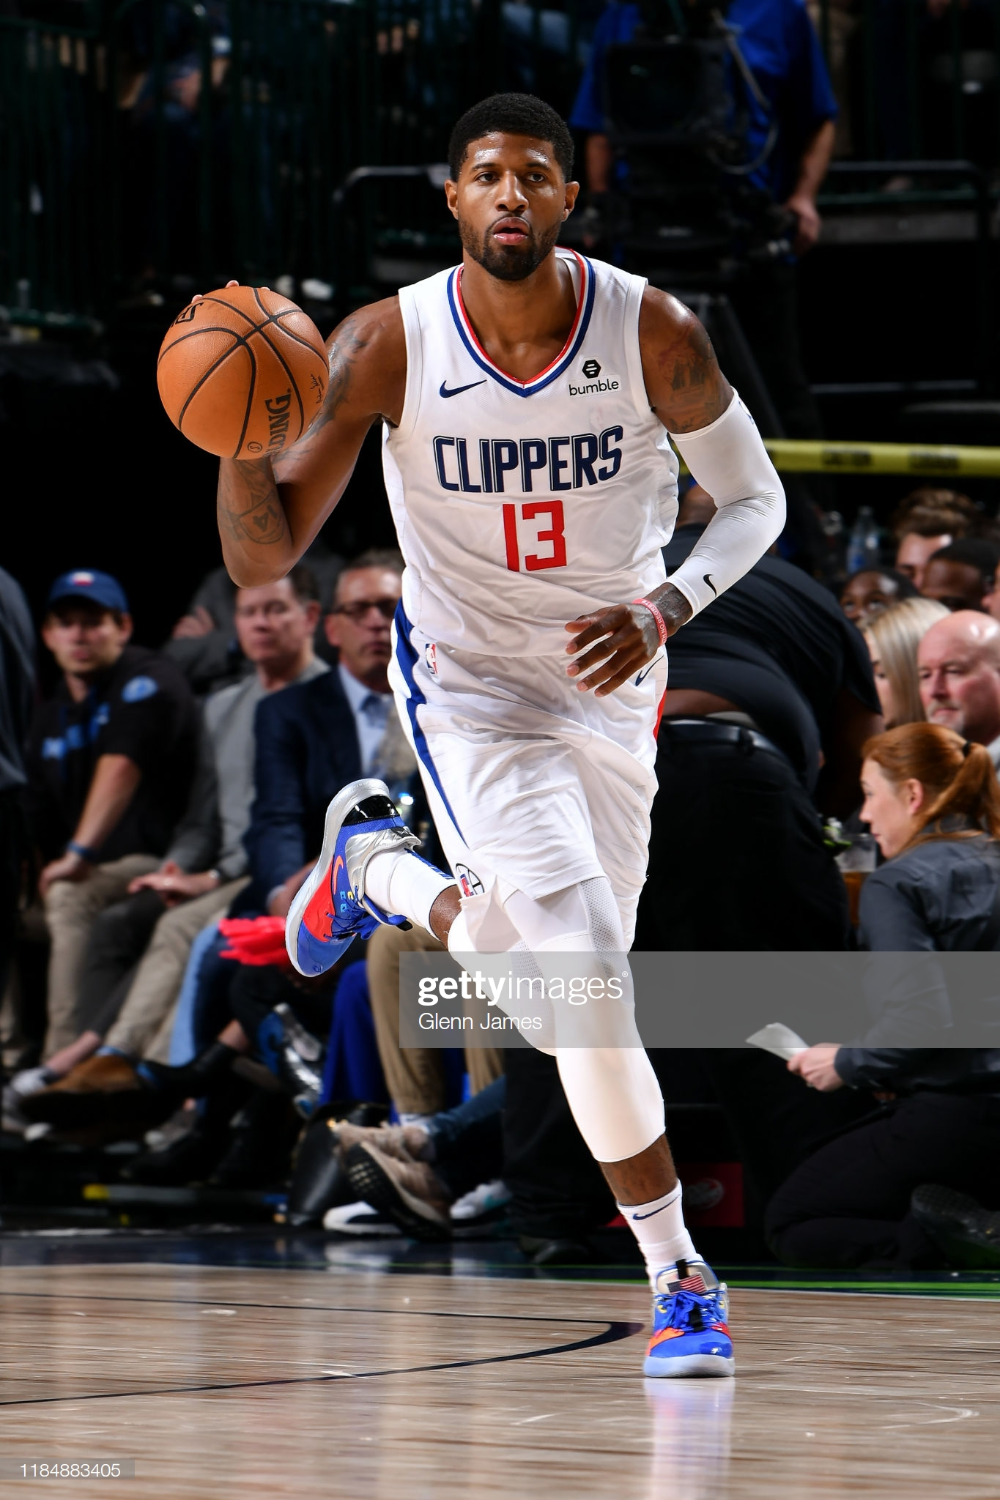 Paul George Of The La Clippers Handles The Ball Against The